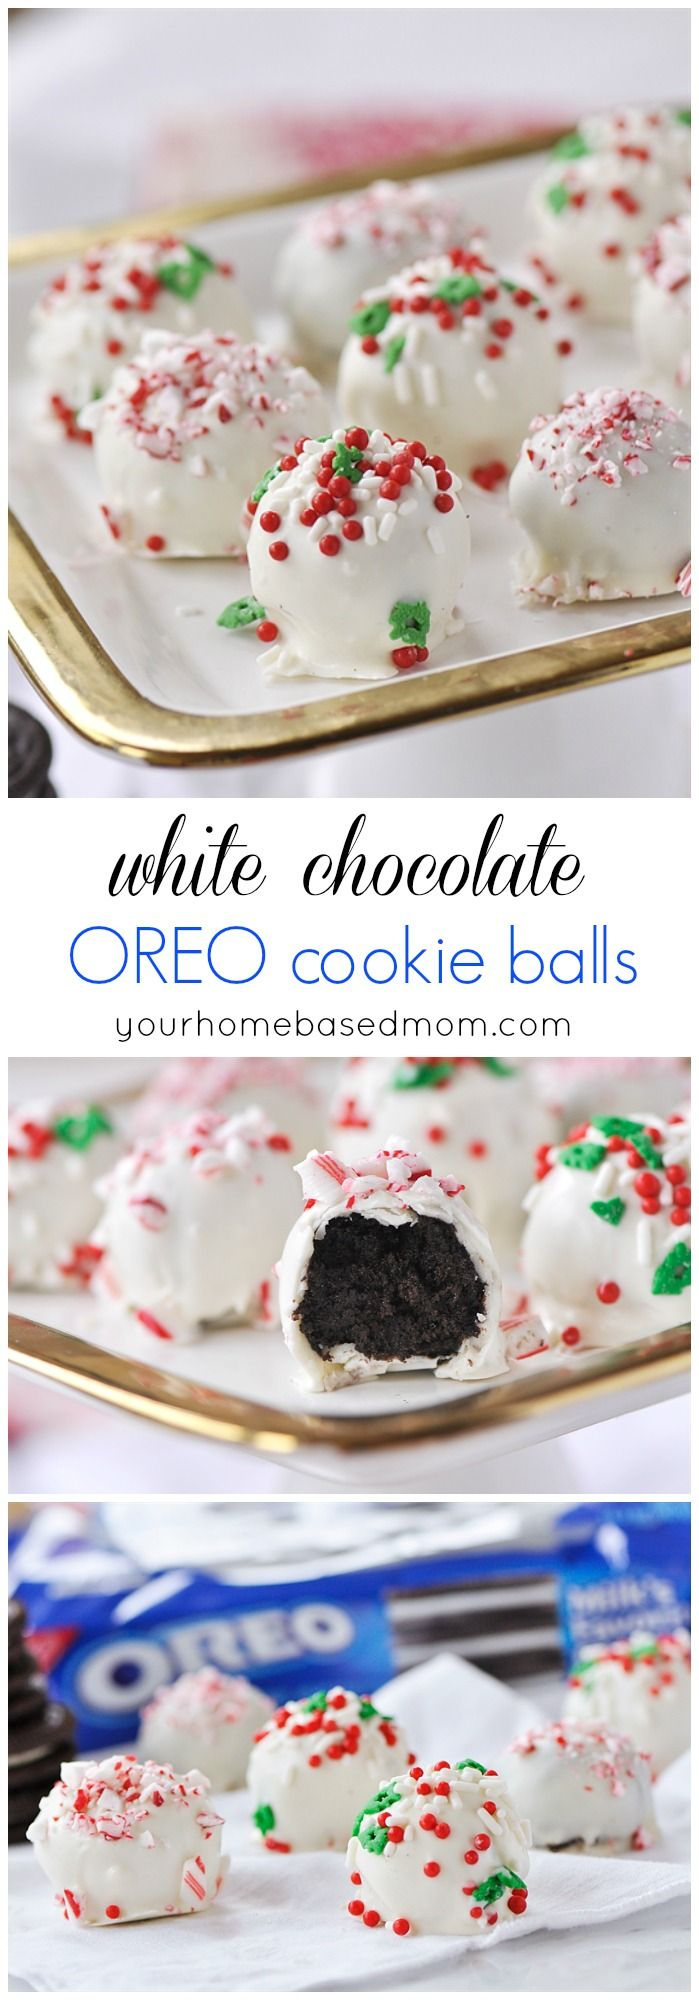 White Chocolate OREO Cookie Balls will be the first thing to disappear off your holiday cookie plate!  #ad